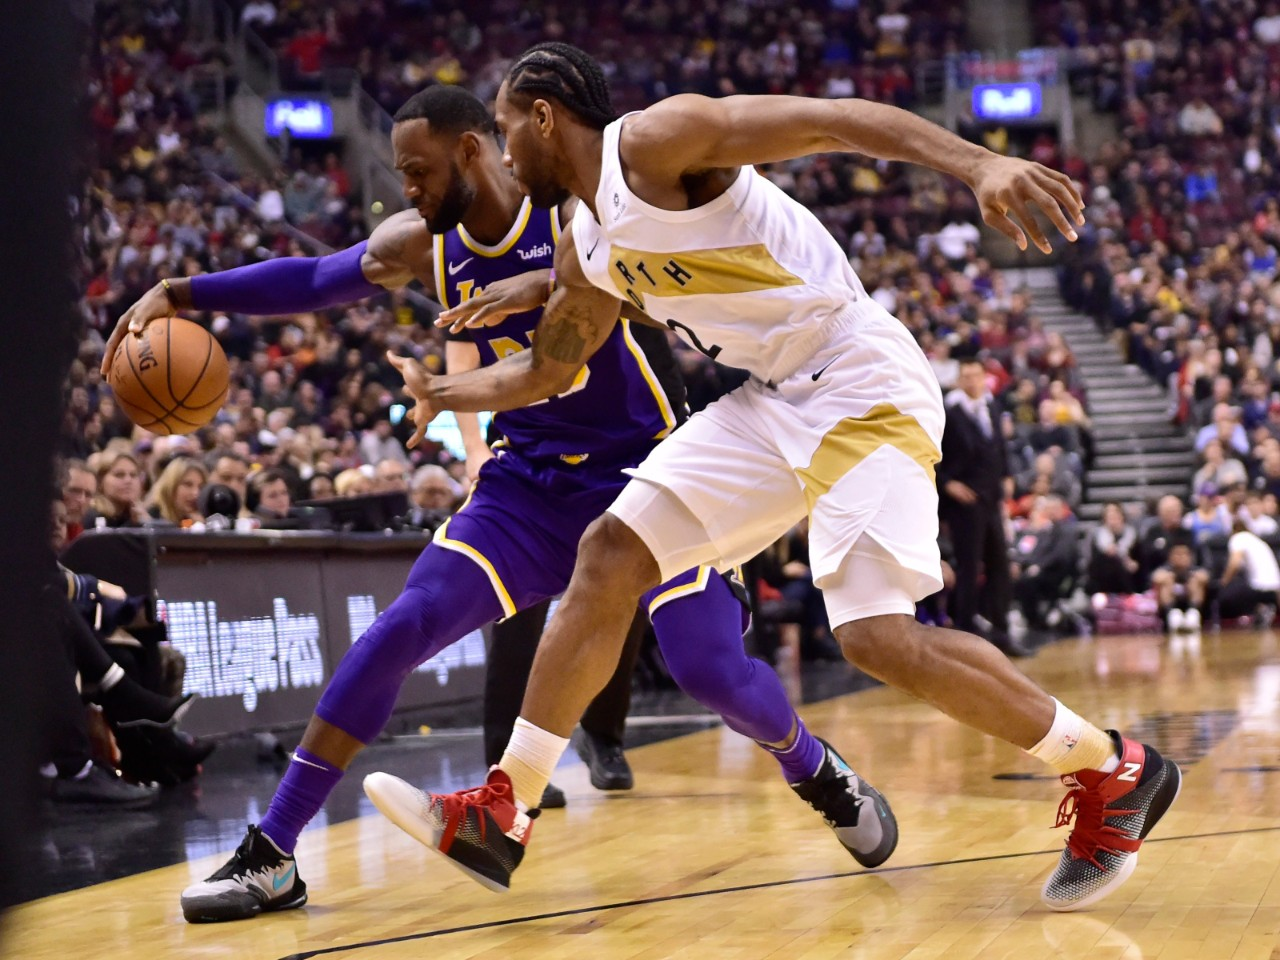 Leonard scores 25 as Raptors cruise to 111-98 win over LeBron and Lakers c9bfc4394